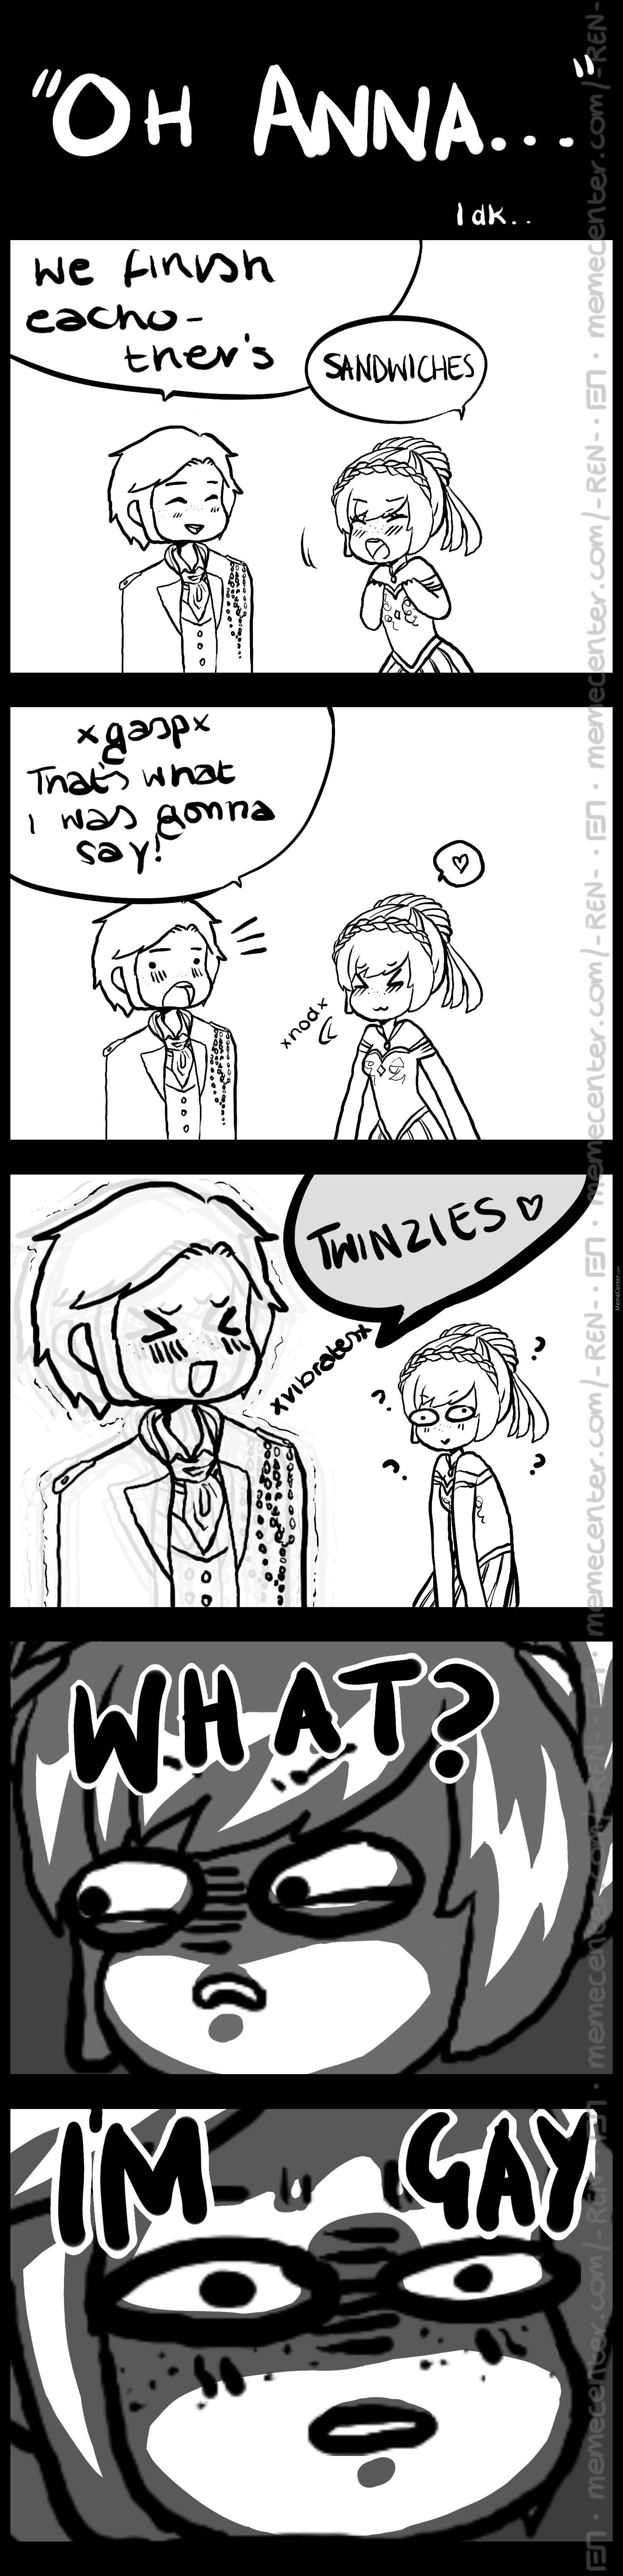 Cause Hans Said... And She... No One Will Get My Un-Funny Joke.....